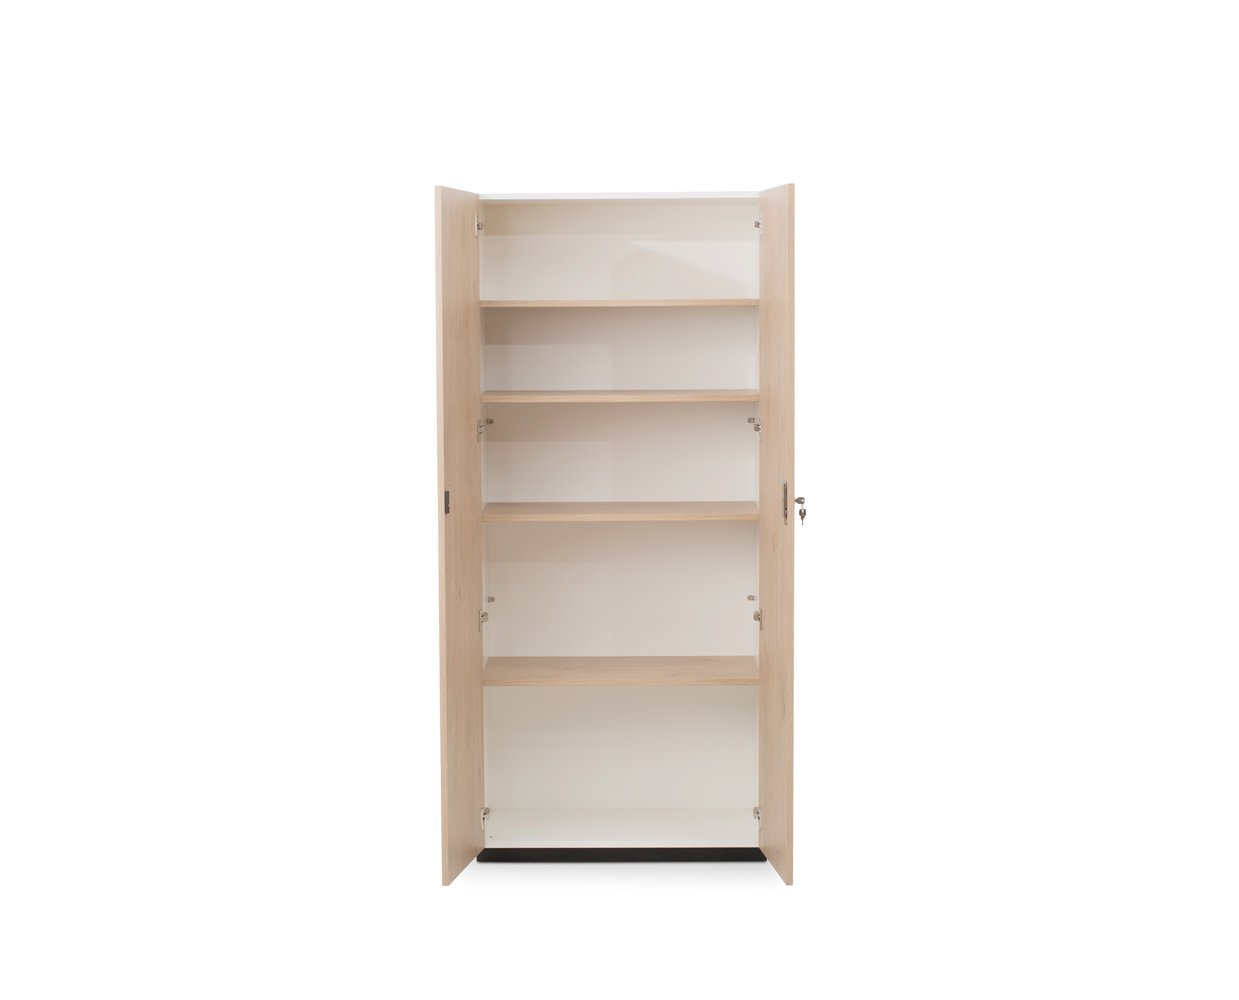 "Jensen 70"" Bookcase Doors OAK - Scandinavian Designs"